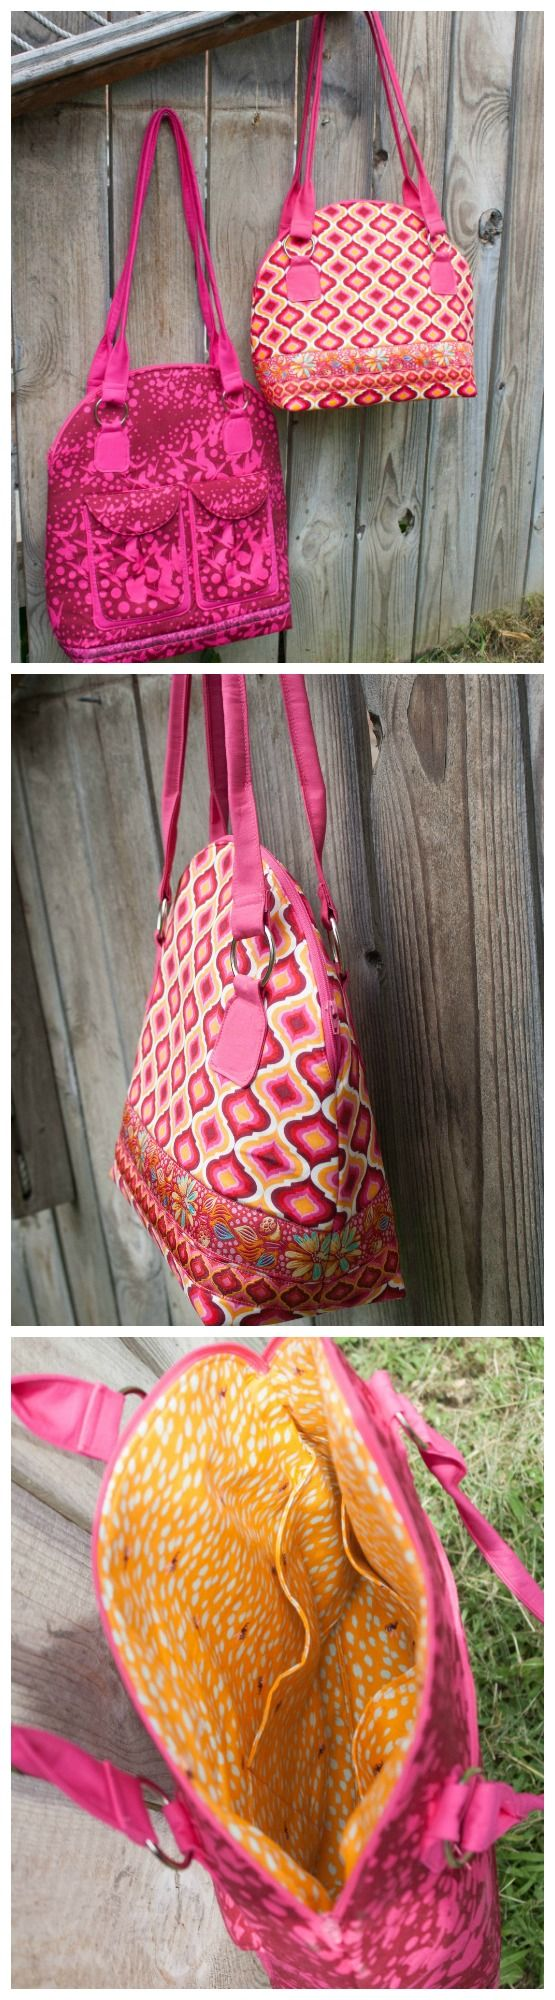 Byebye Love bag sewing pattern. Pattern comes in two sizes for a regular or…